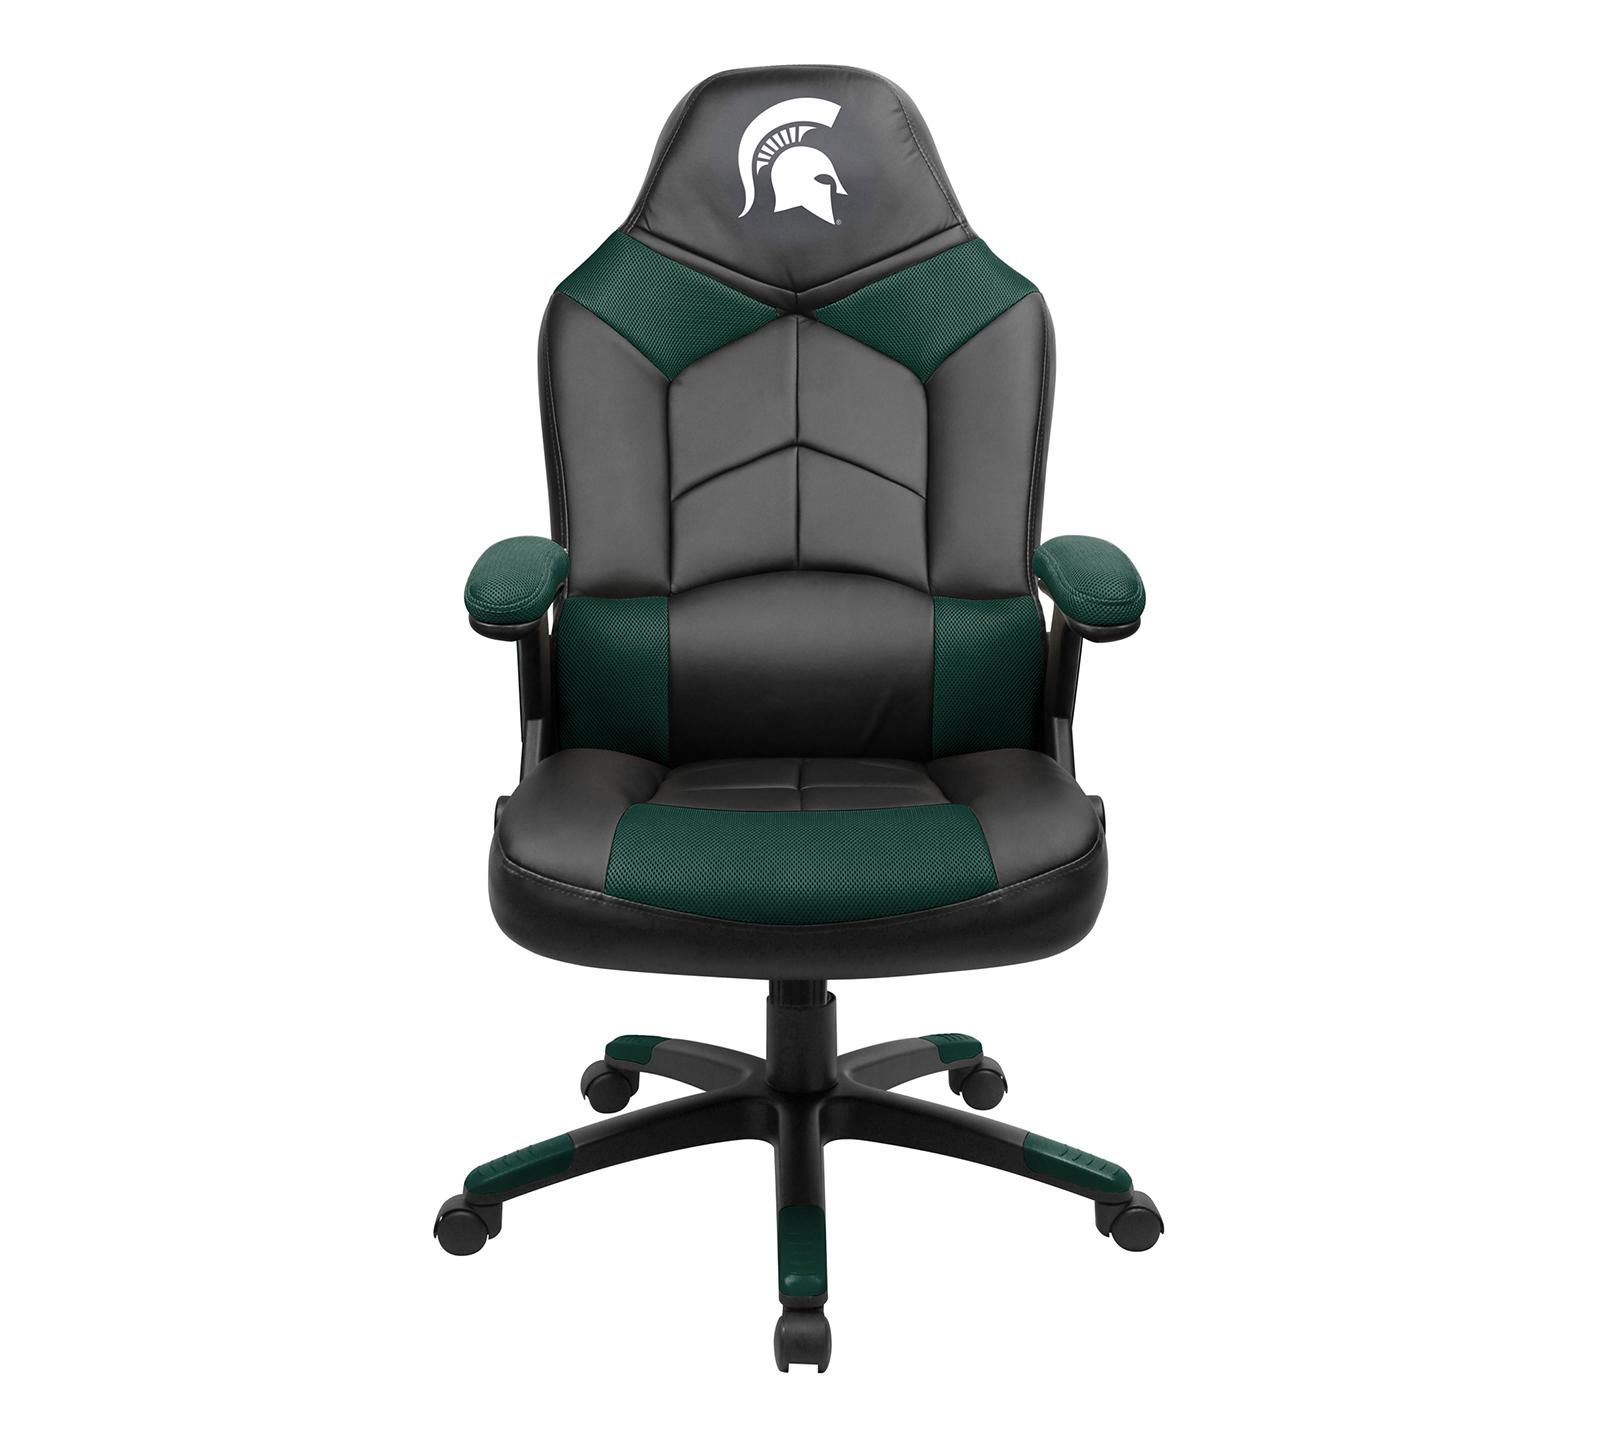 NCAA Oversized Gaming Chair